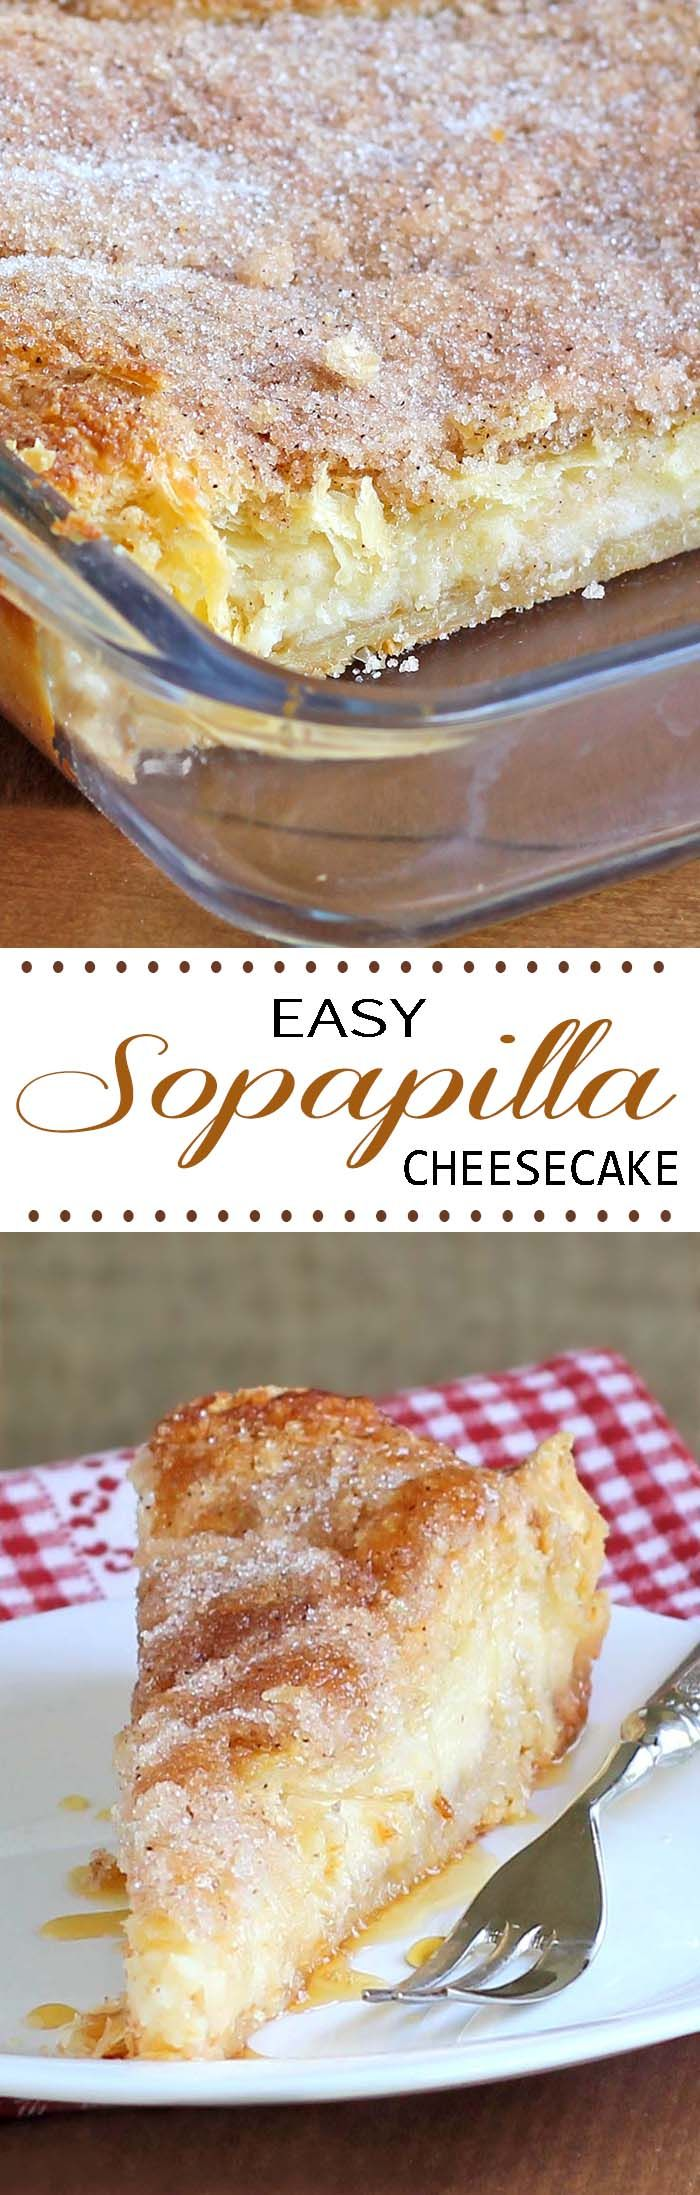 Sopapilla Cheesecake Dessert? Check. Easy? Check. So freakin' good they'll blow your mind?